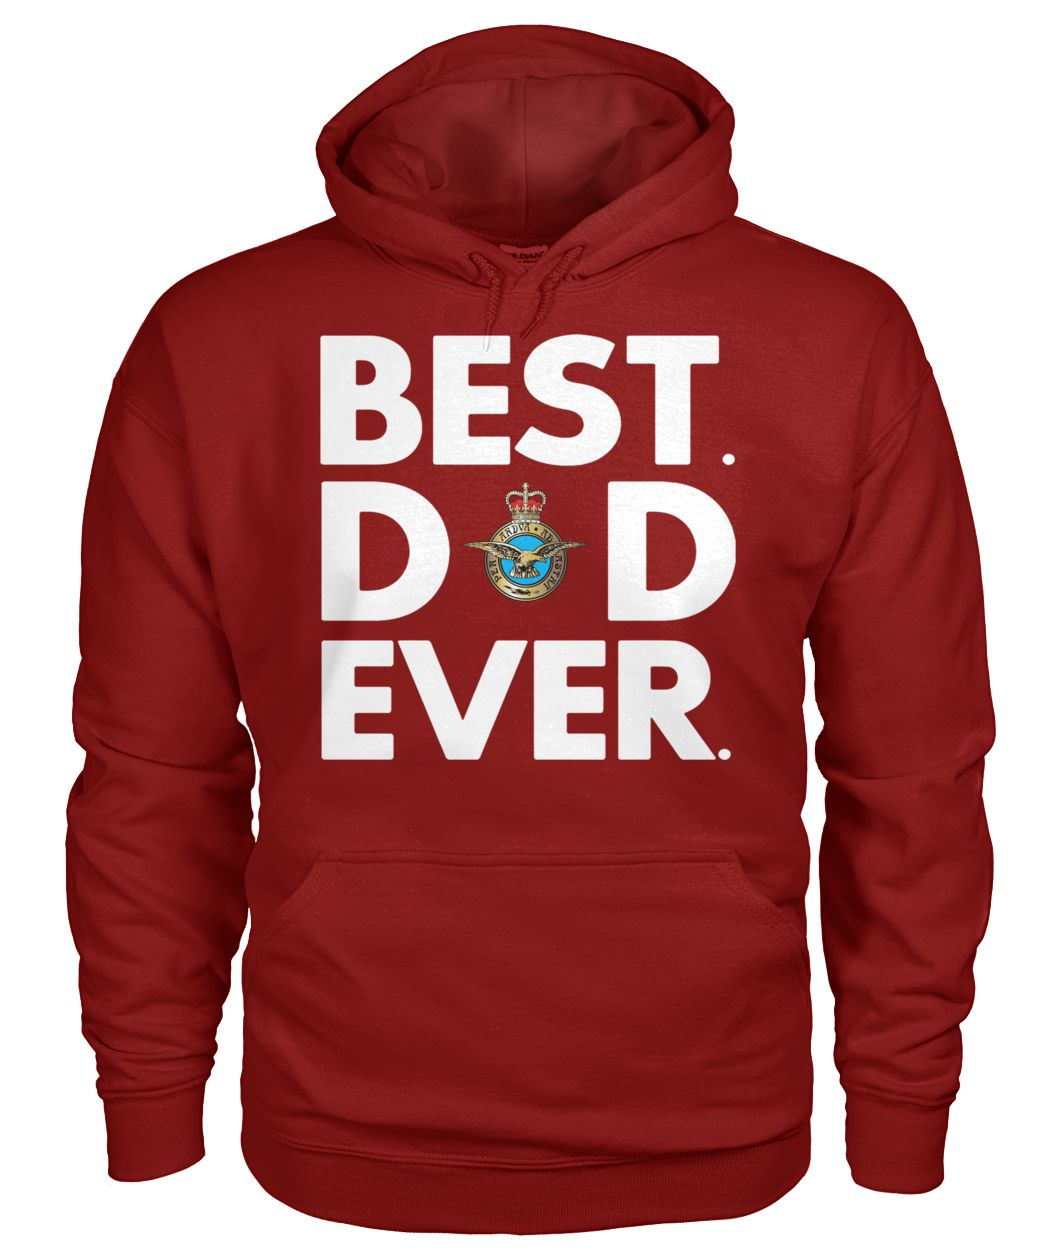 Royal air force best dad ever gildan hoodie